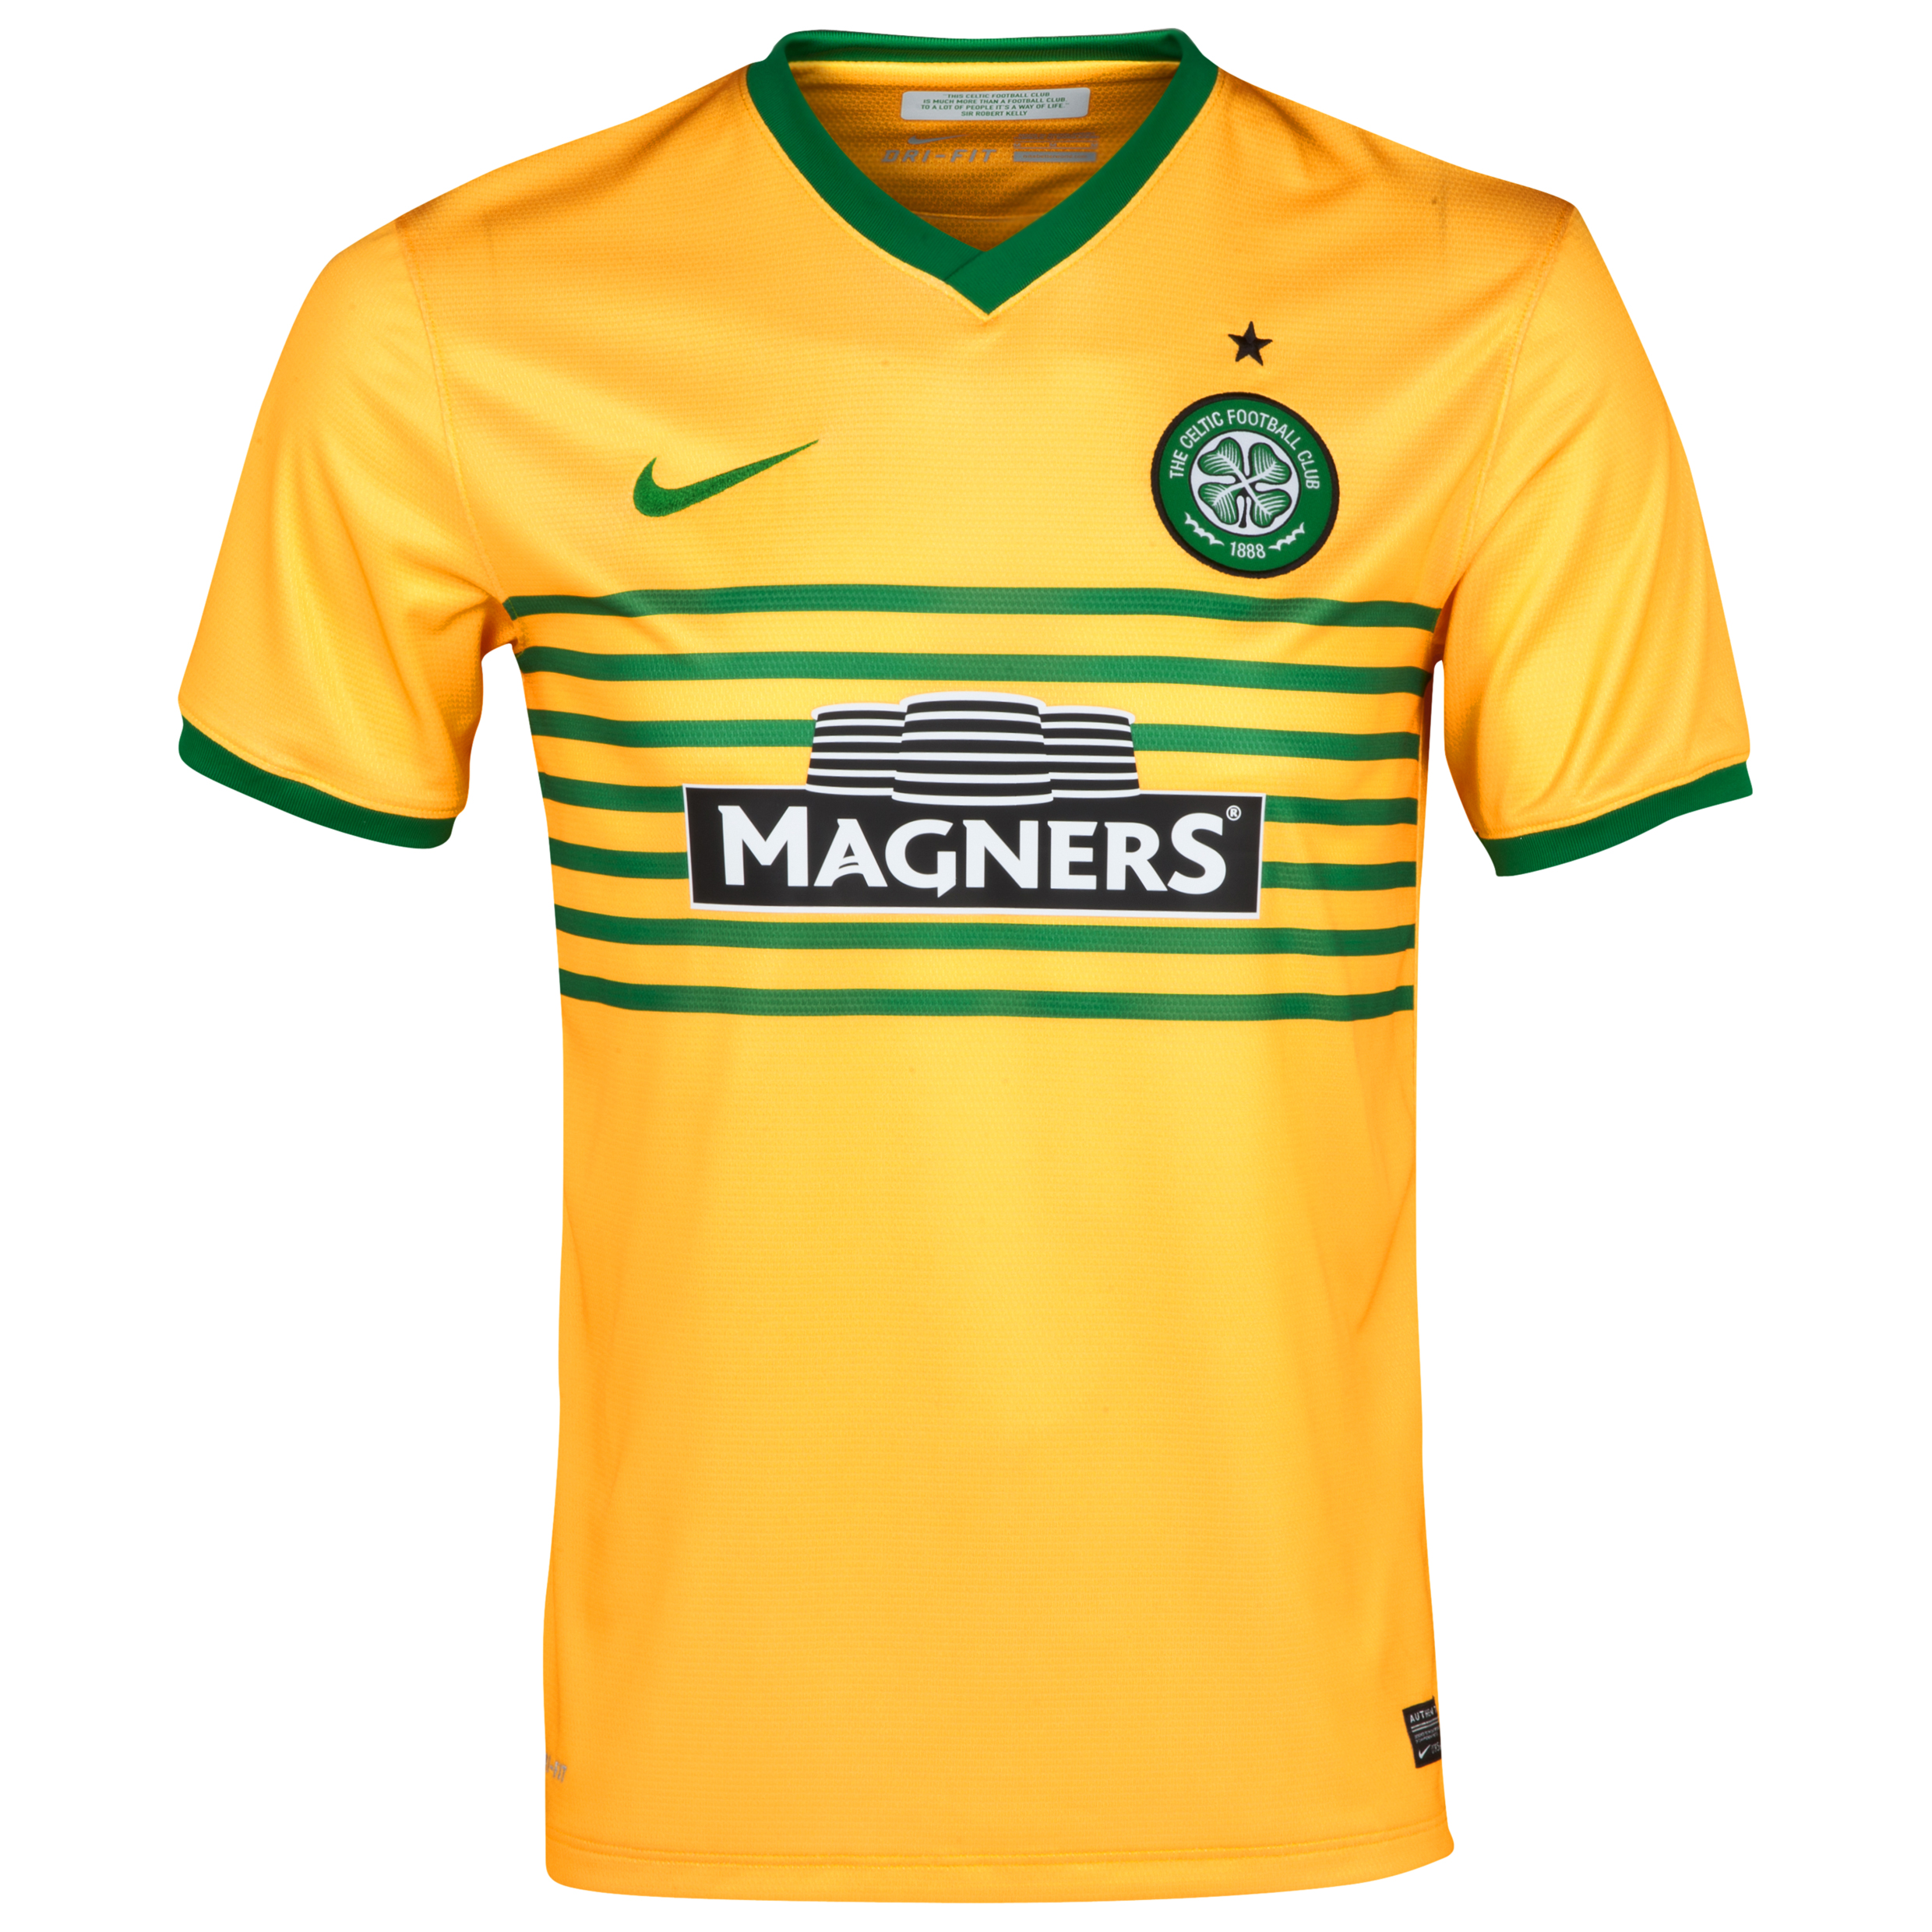 2013/14 Away Kit From £28.92